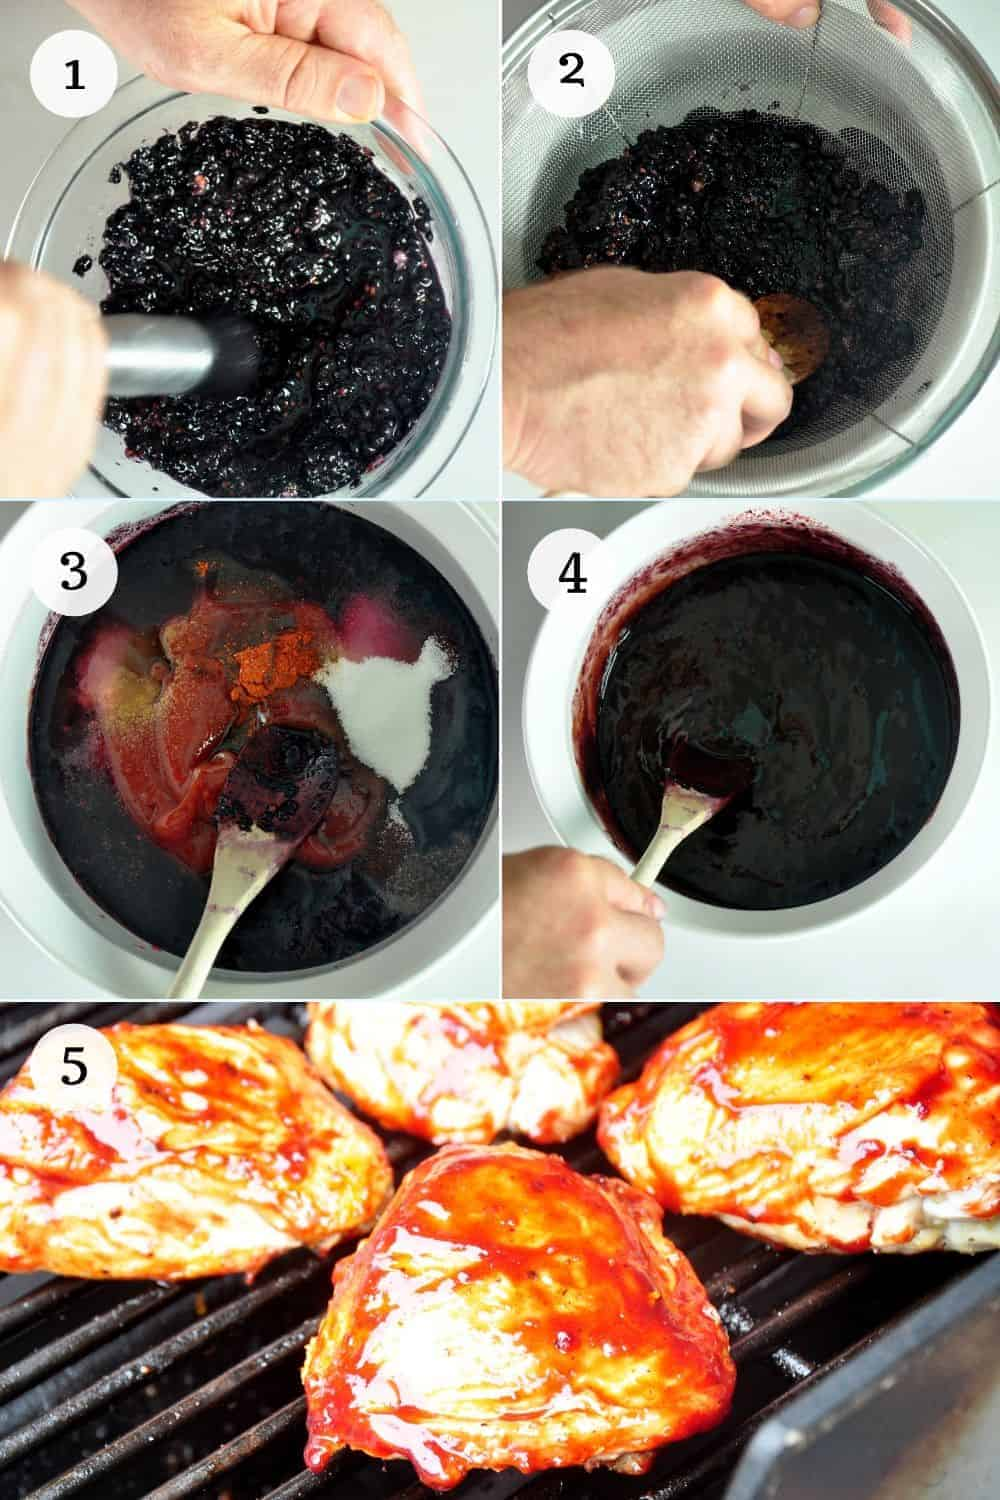 Numbered Process List for Cooking Blackberry Homemade BBQ Sauce Recipe and Grilling Chicken